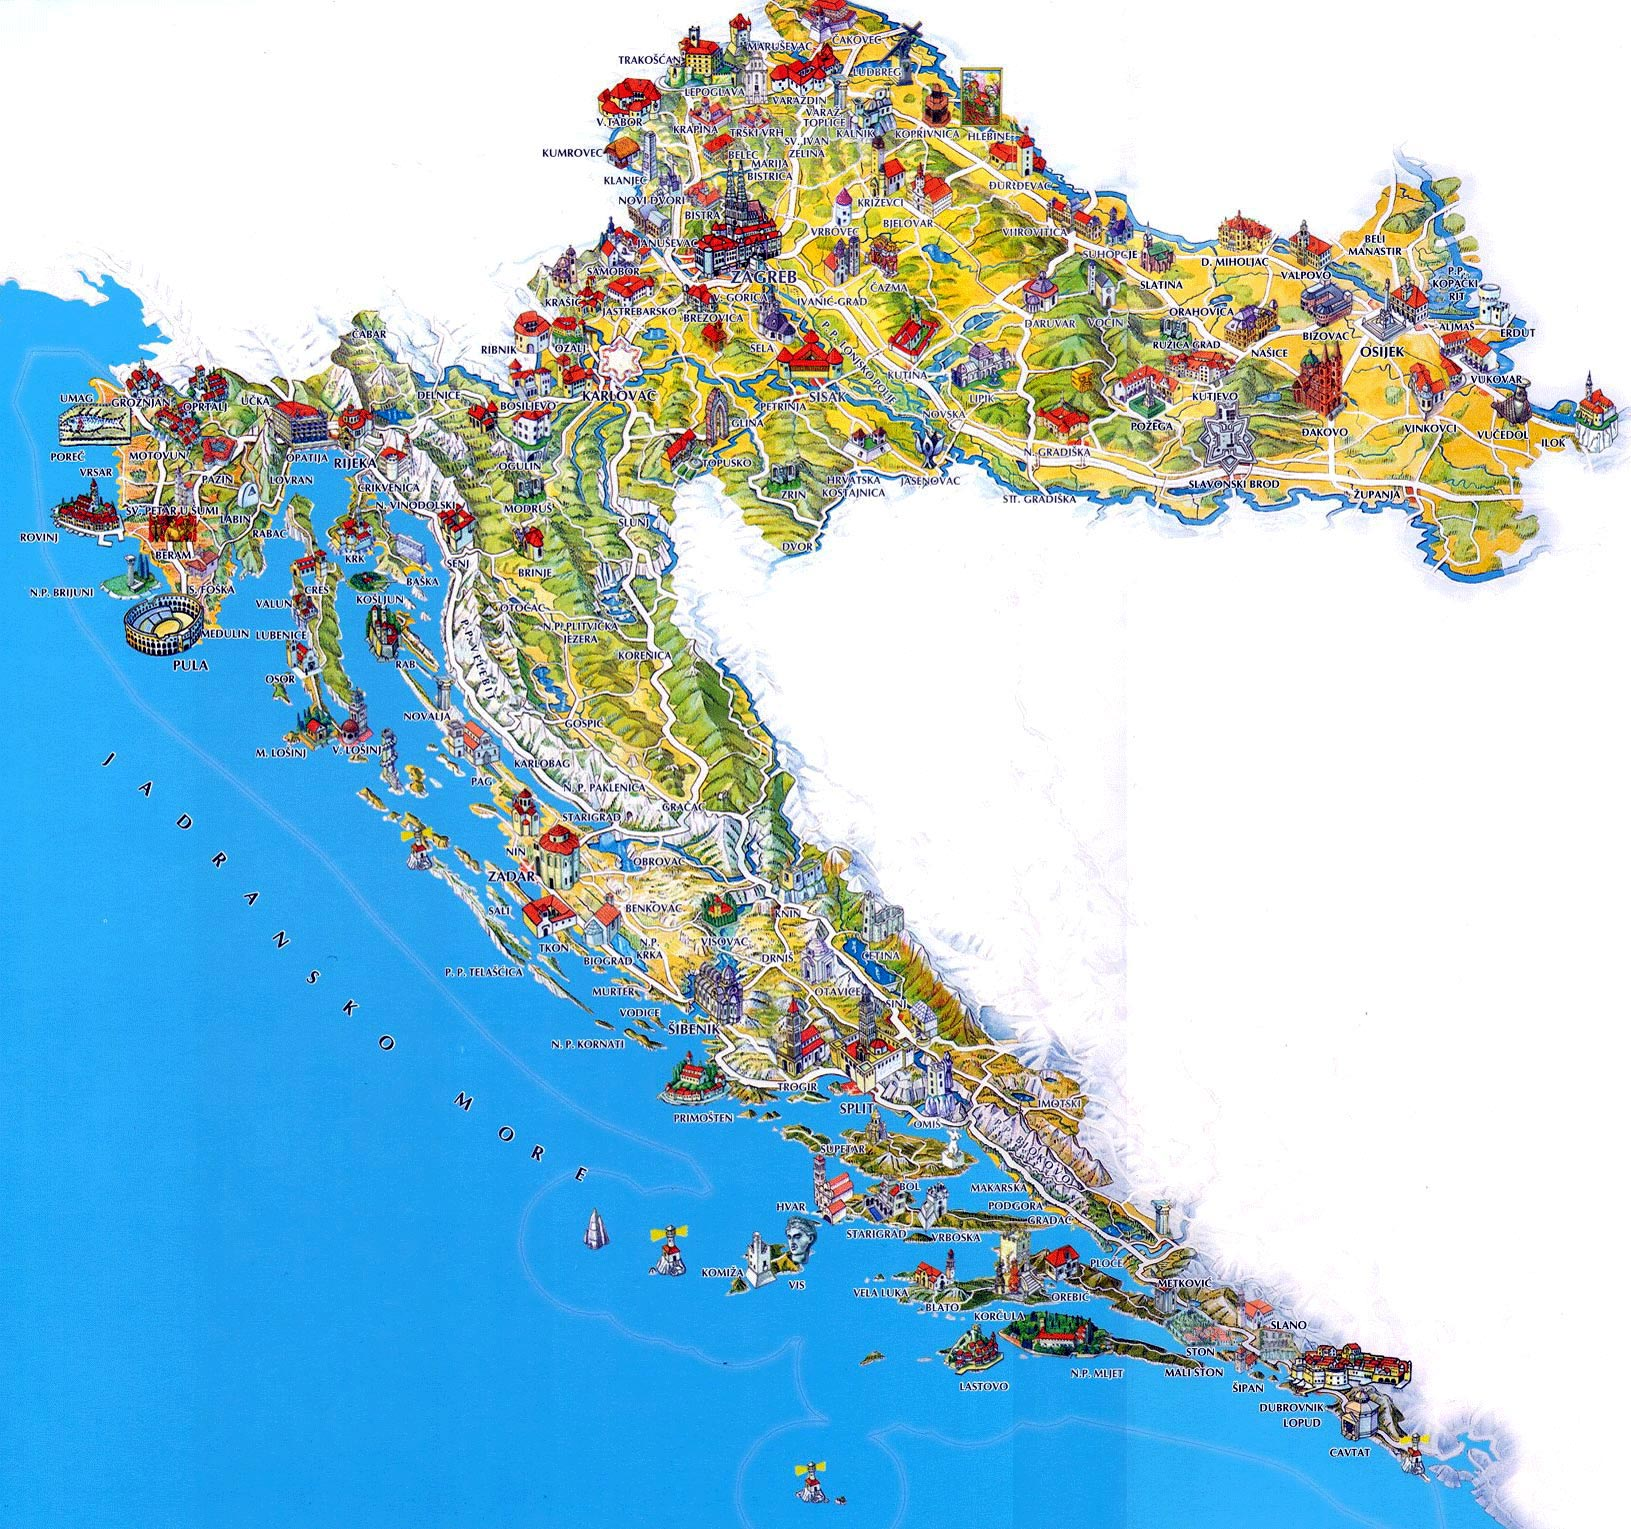 Croatia Maps | Printable Maps of Croatia for Download